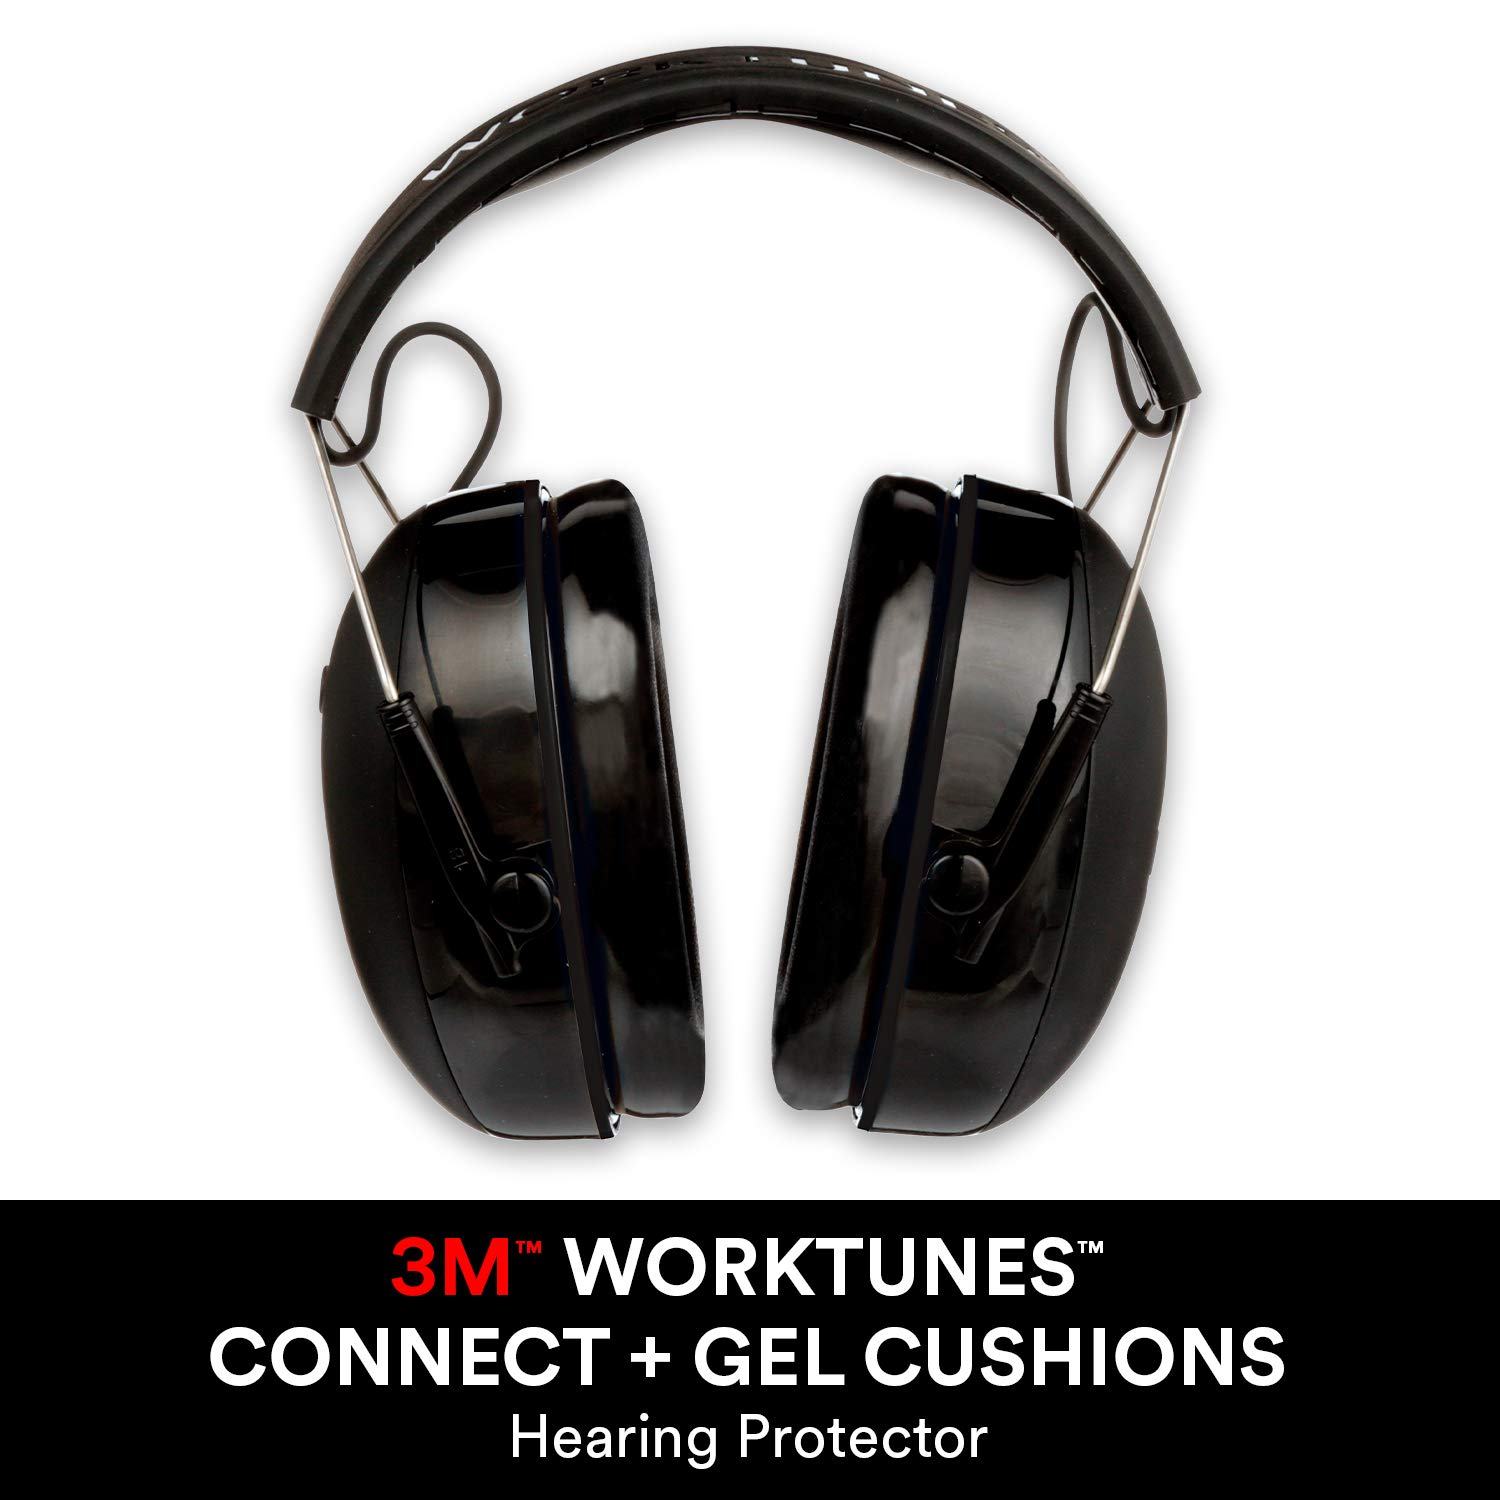 3M WorkTunes Connect + Gel Cushions Wireless Hearing Protector with Bluetooth Technology